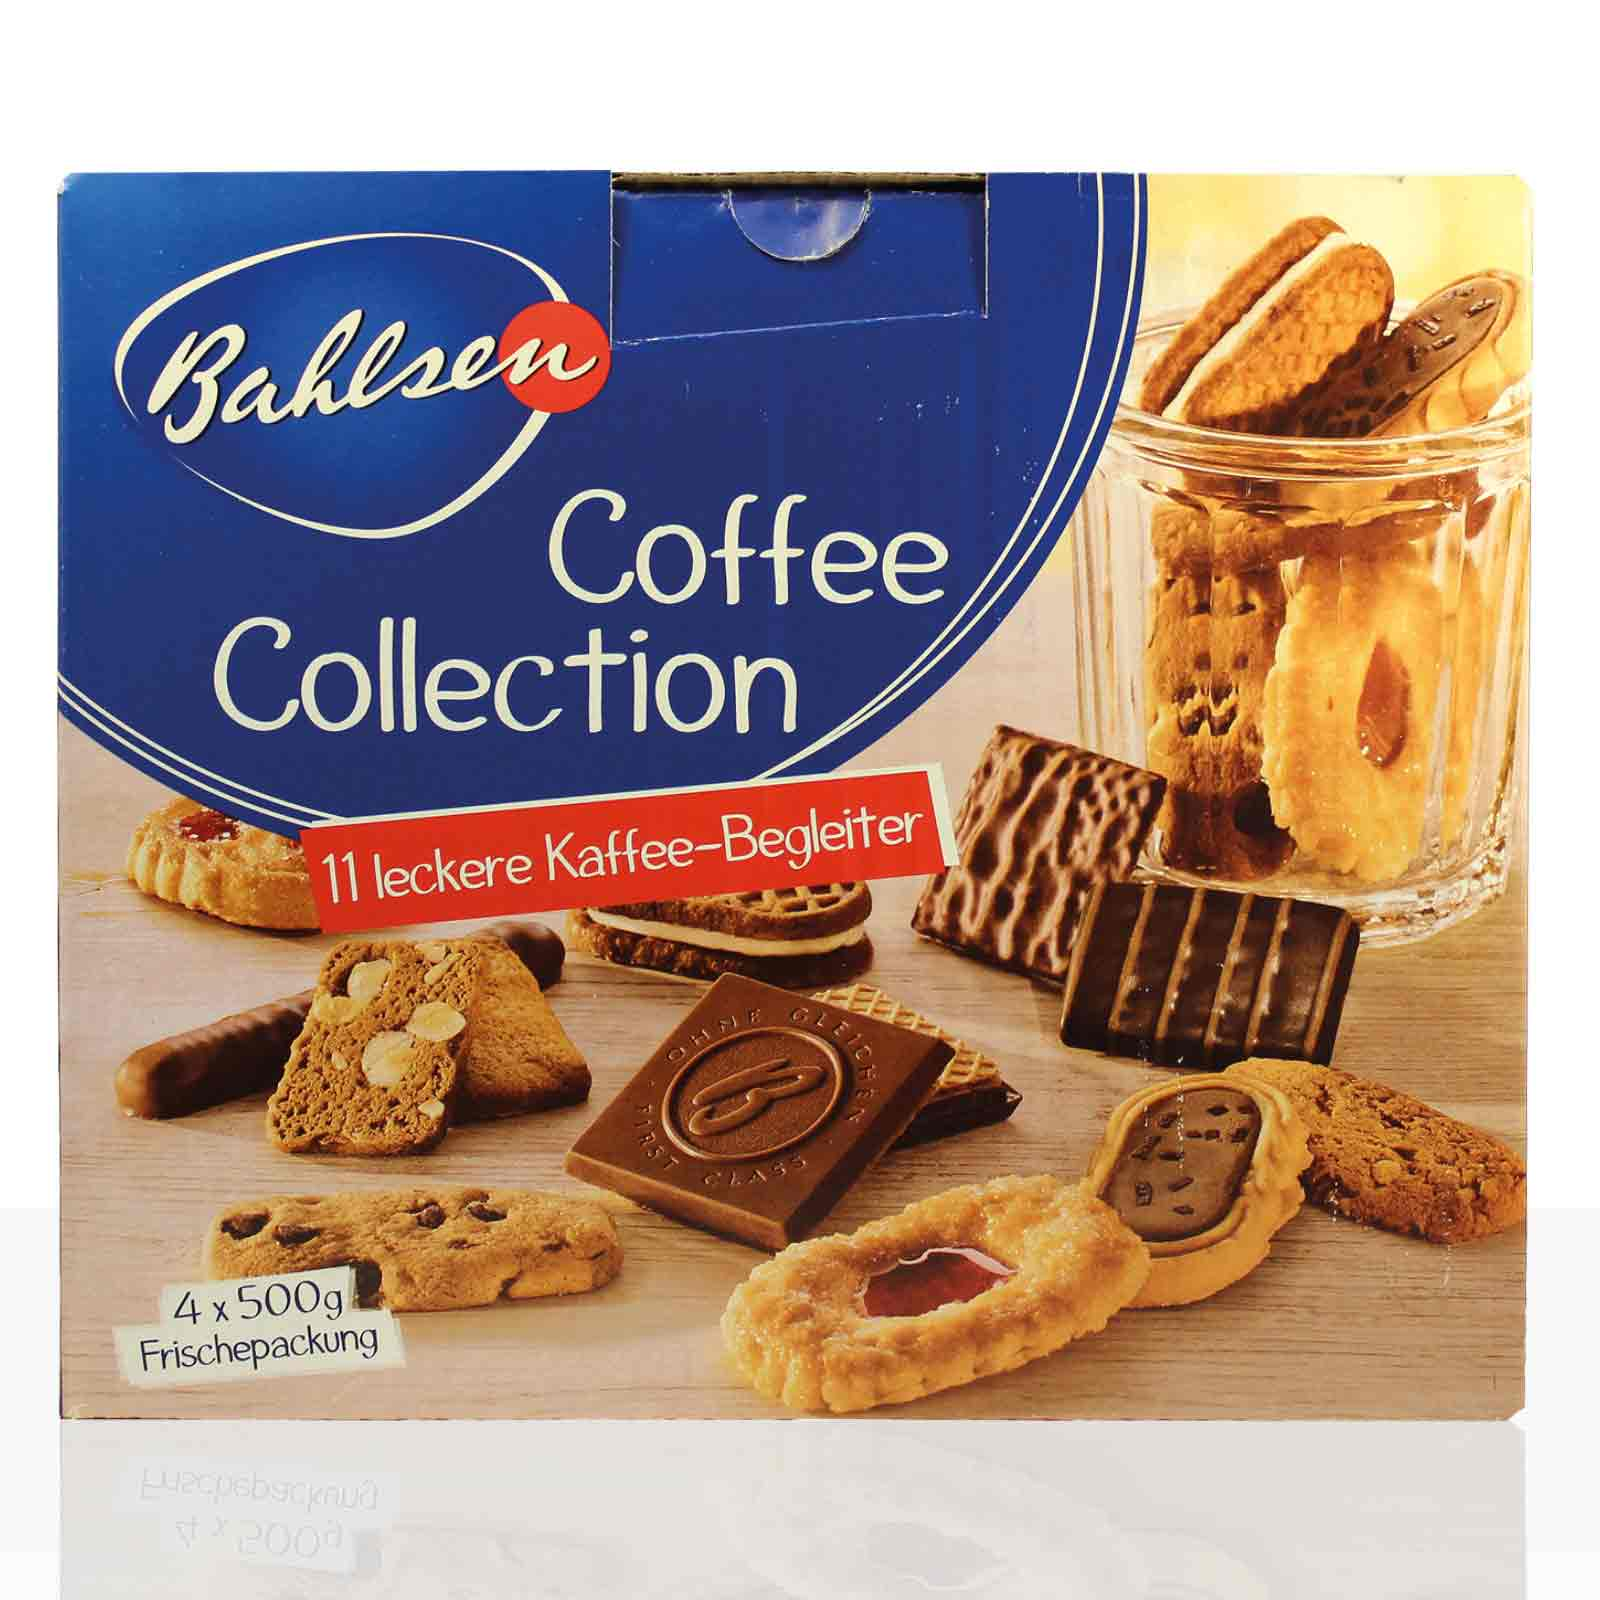 Bahlsen Kekse Coffee Collection Gebäck mit 11 erlesenen Sorten 4 x 500g